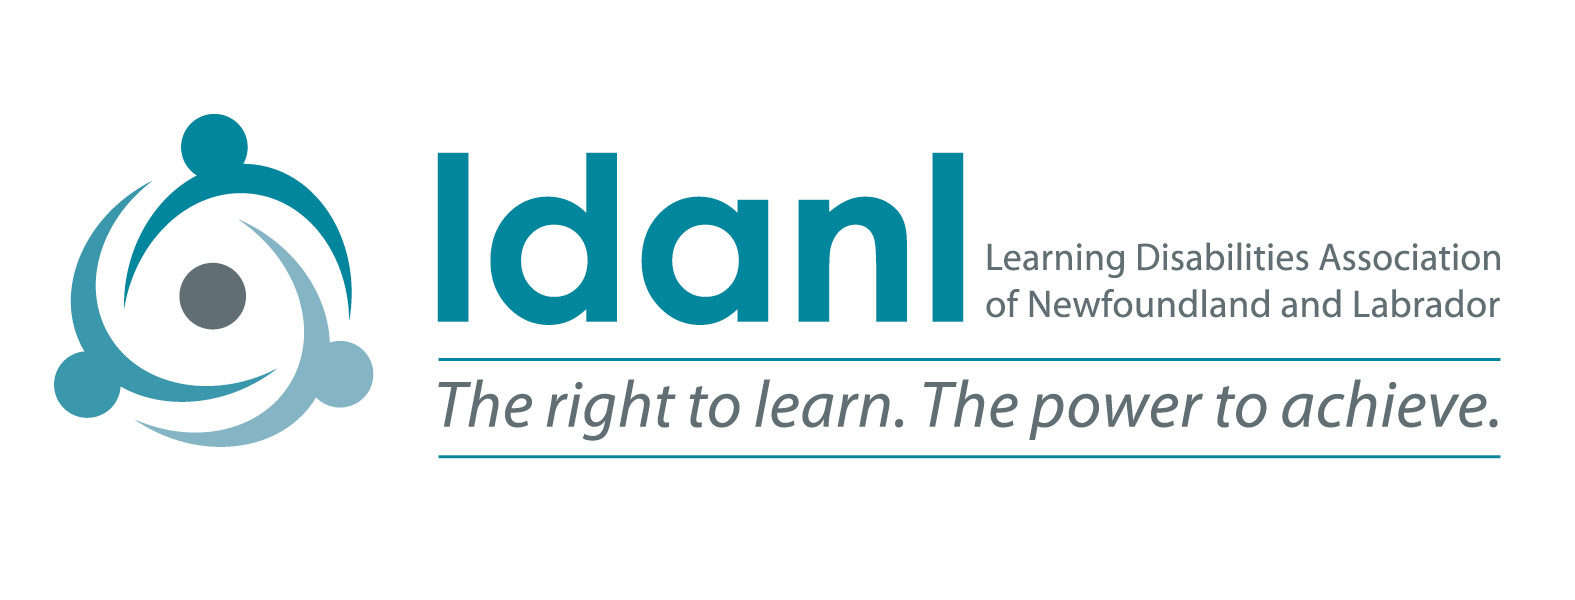 cropped-LDANL-Logo-Revised-Tagline-Horizontal-v4.jpg